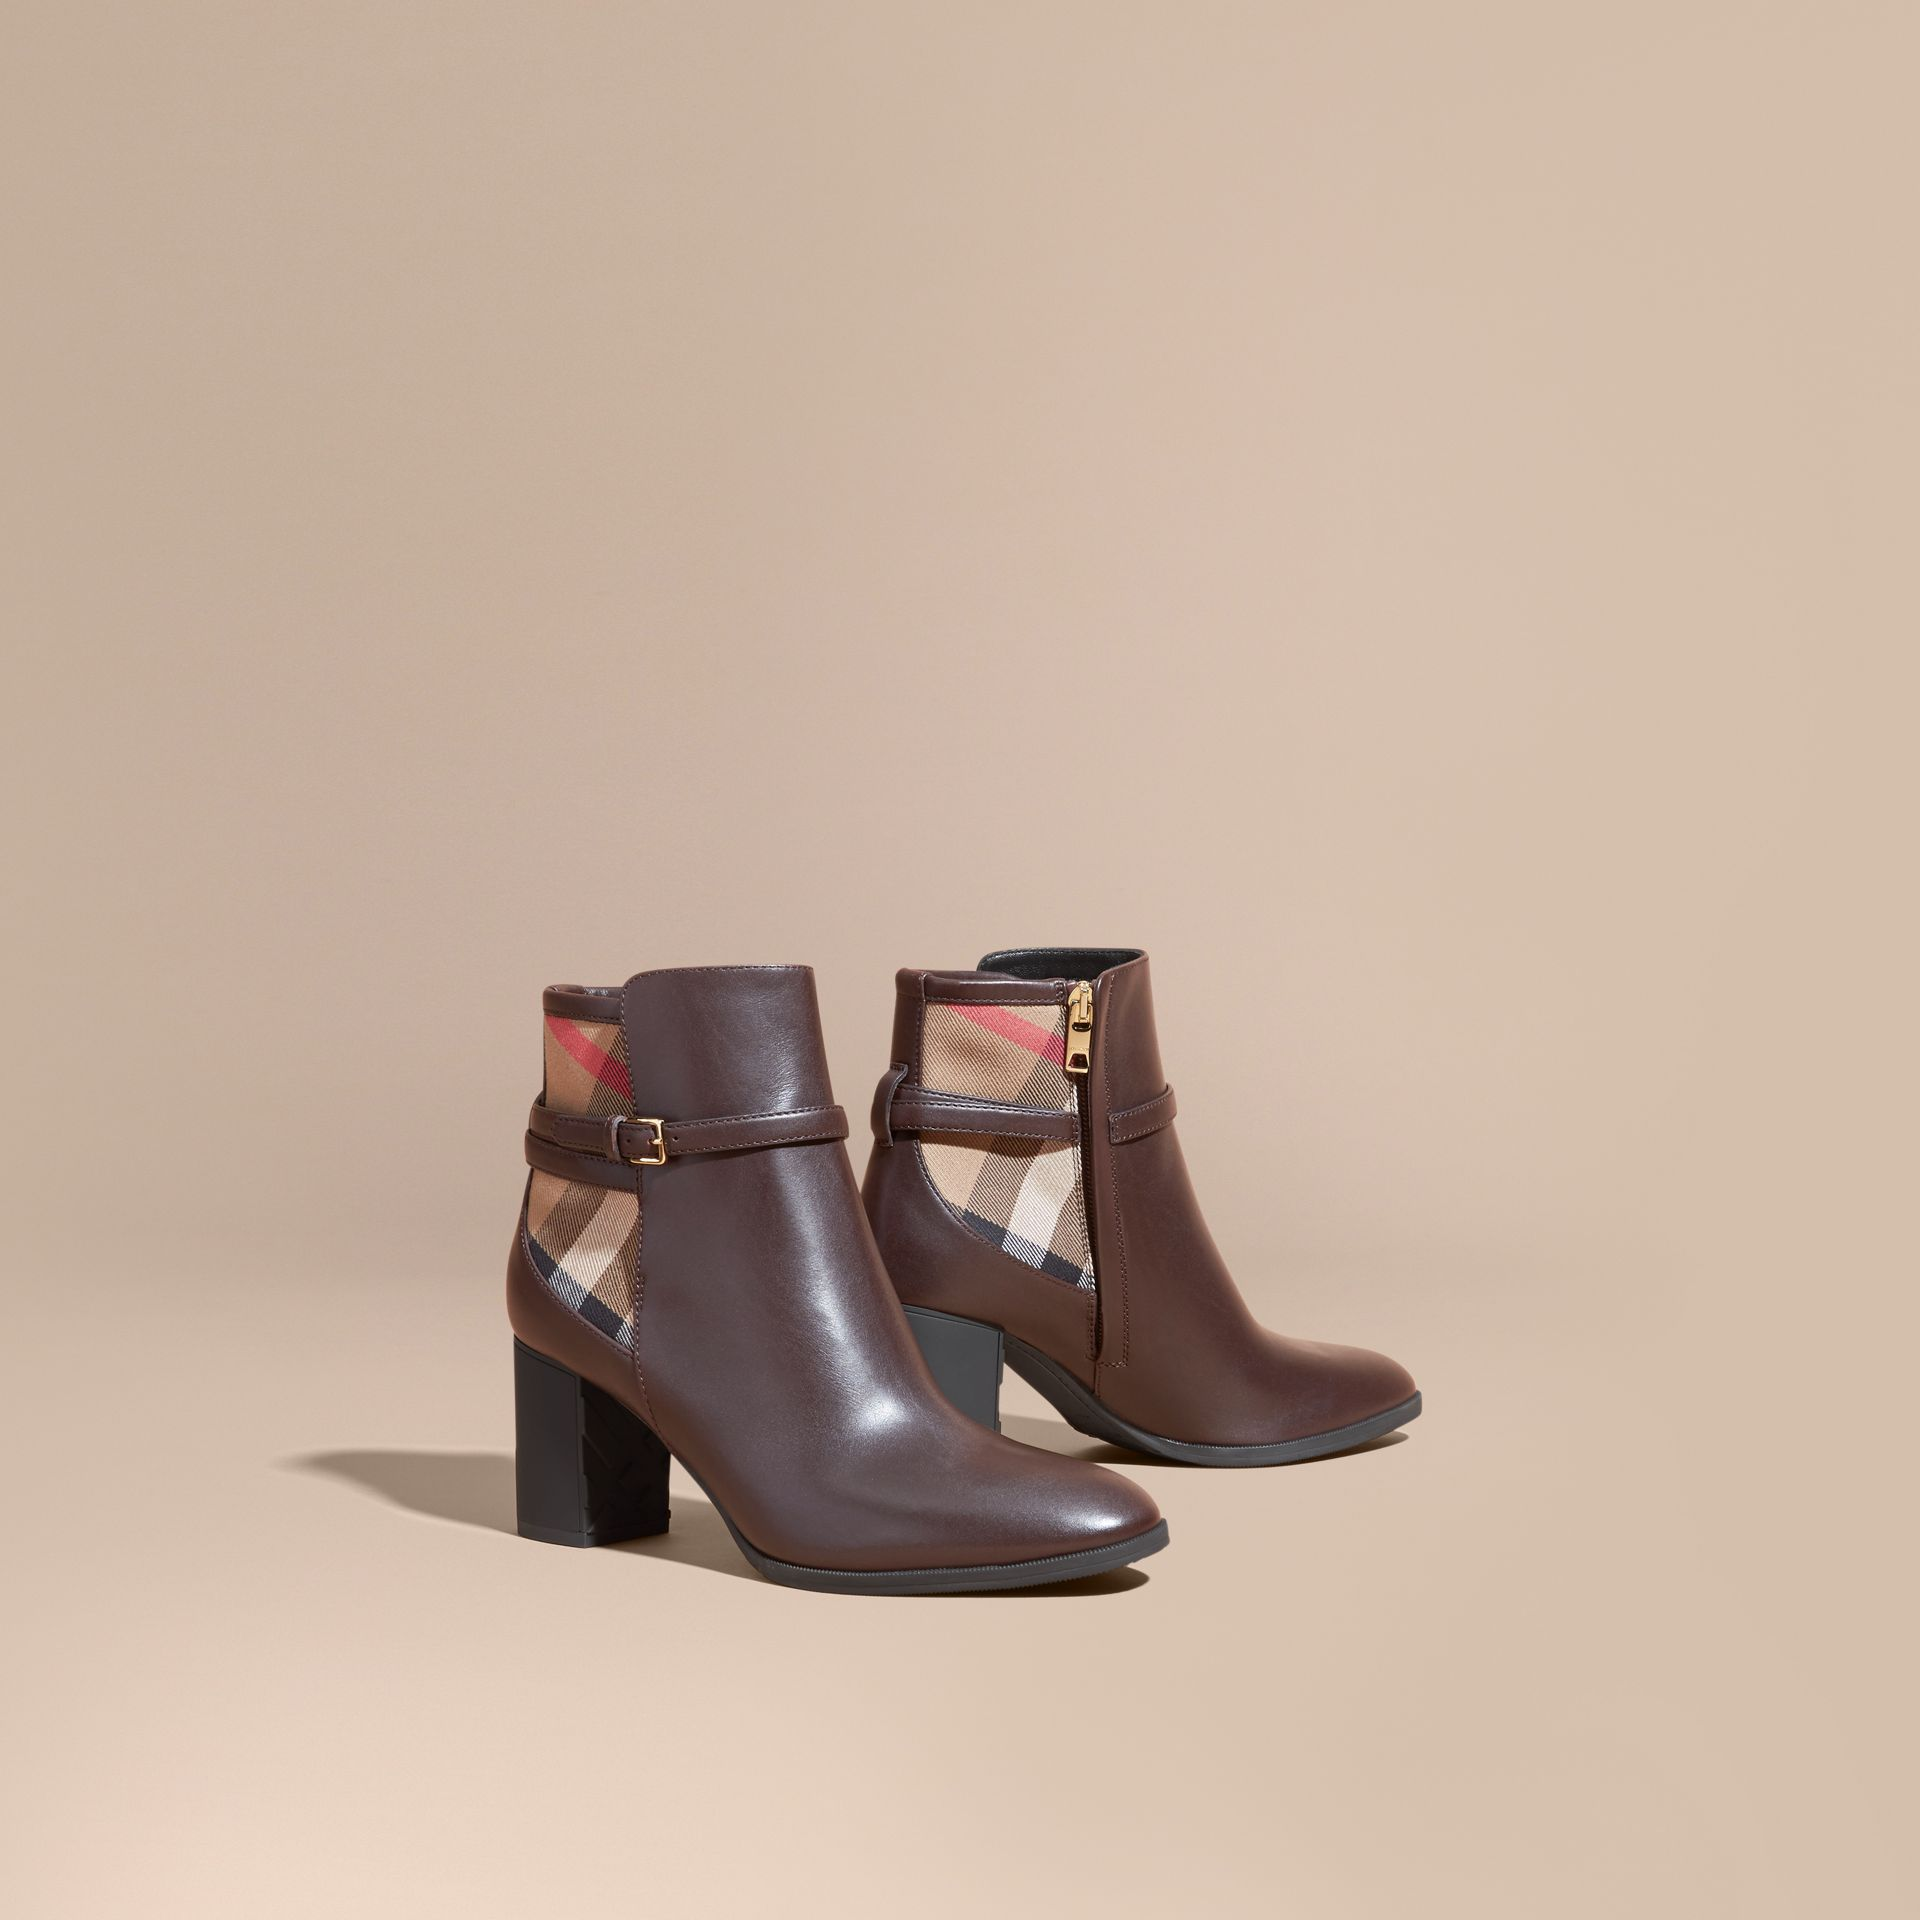 Chestnut House Check and Leather Ankle Boots Chestnut - gallery image 1